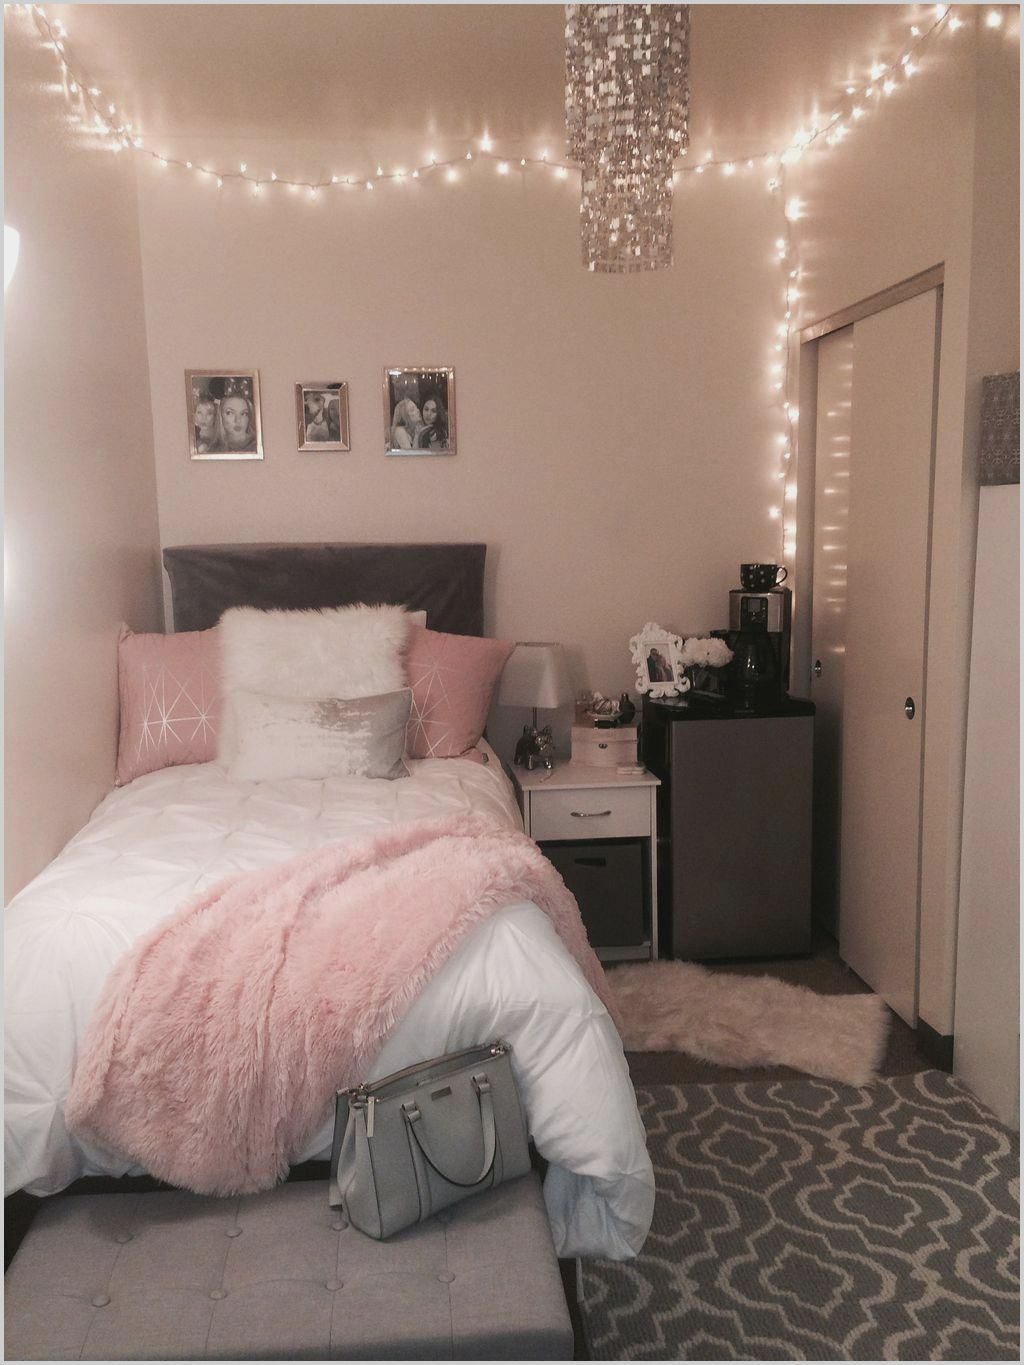 Small Cute Bedroom Designs In 2020 Small Room Bedroom Small Bedroom Decor Small Bedroom